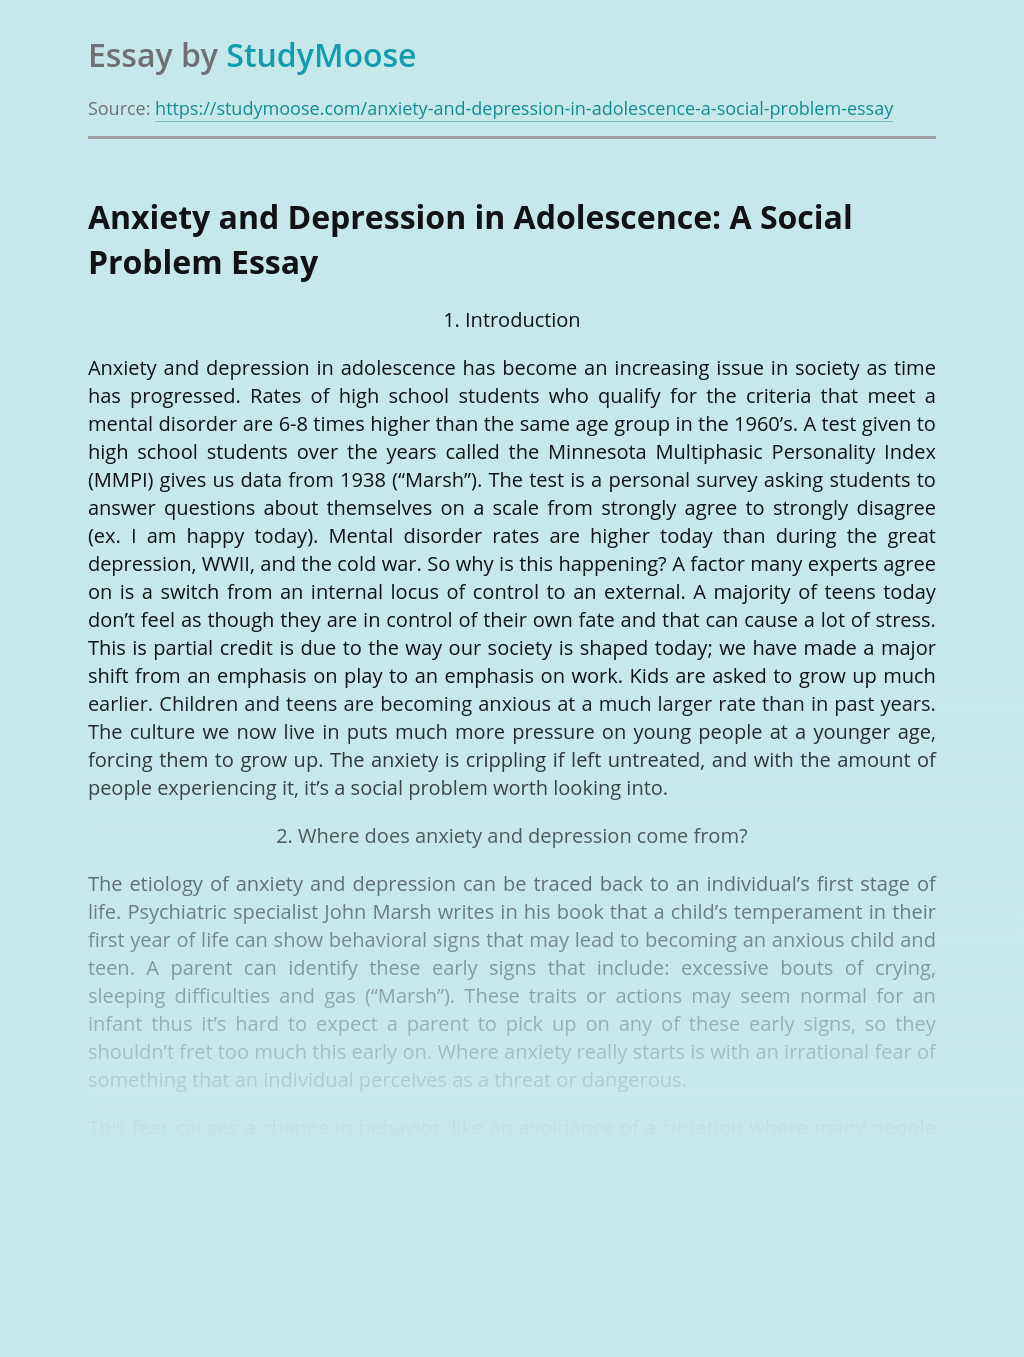 Anxiety and Depression in Adolescence: A Social Problem